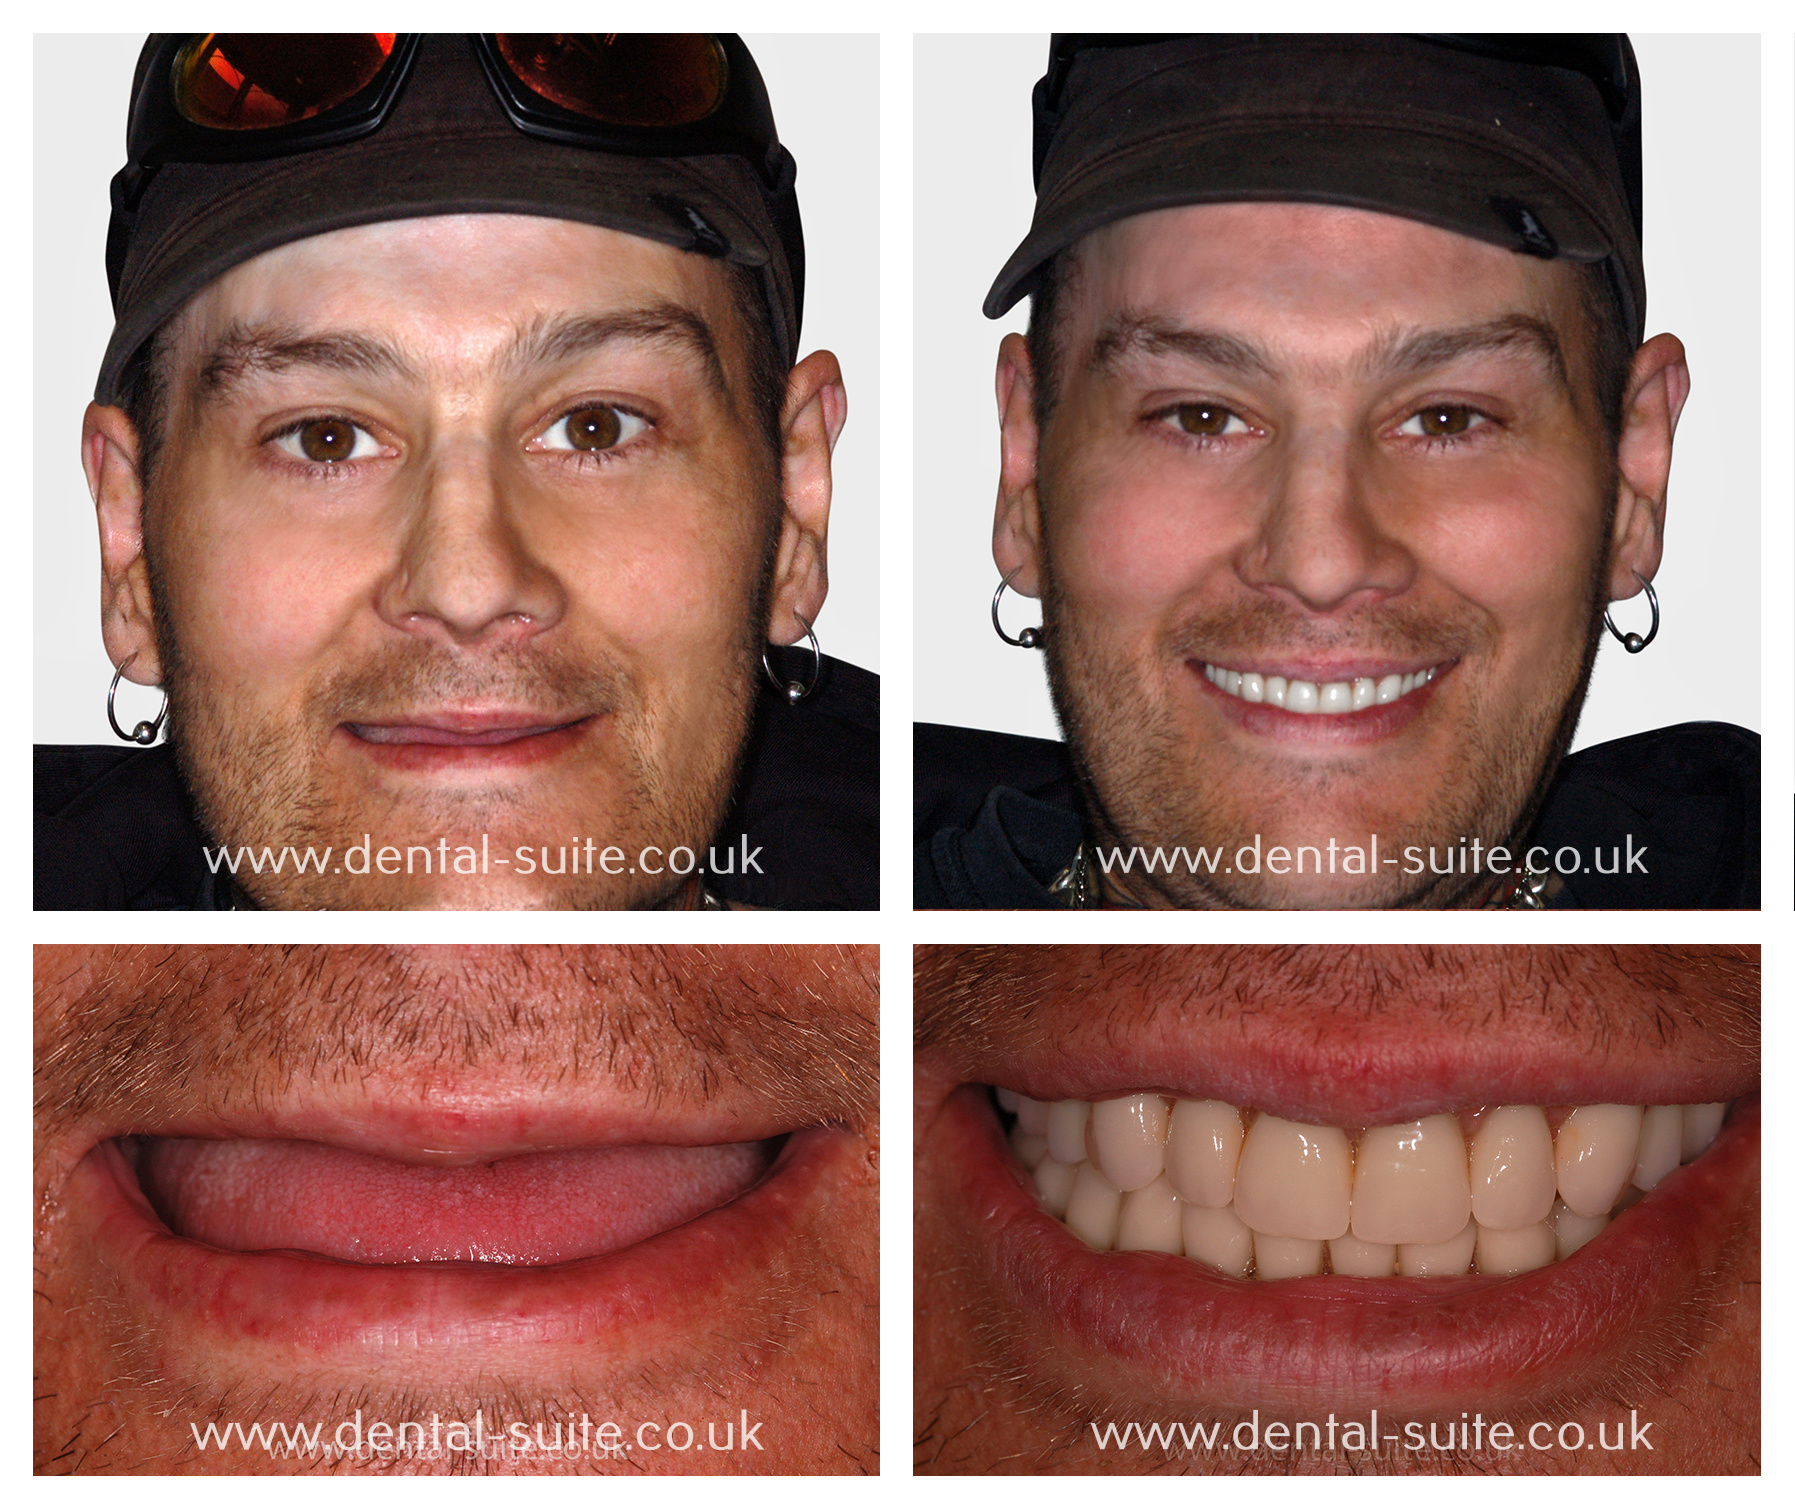 Nottingham Teeth in a Day Treatment - The Dental Suite